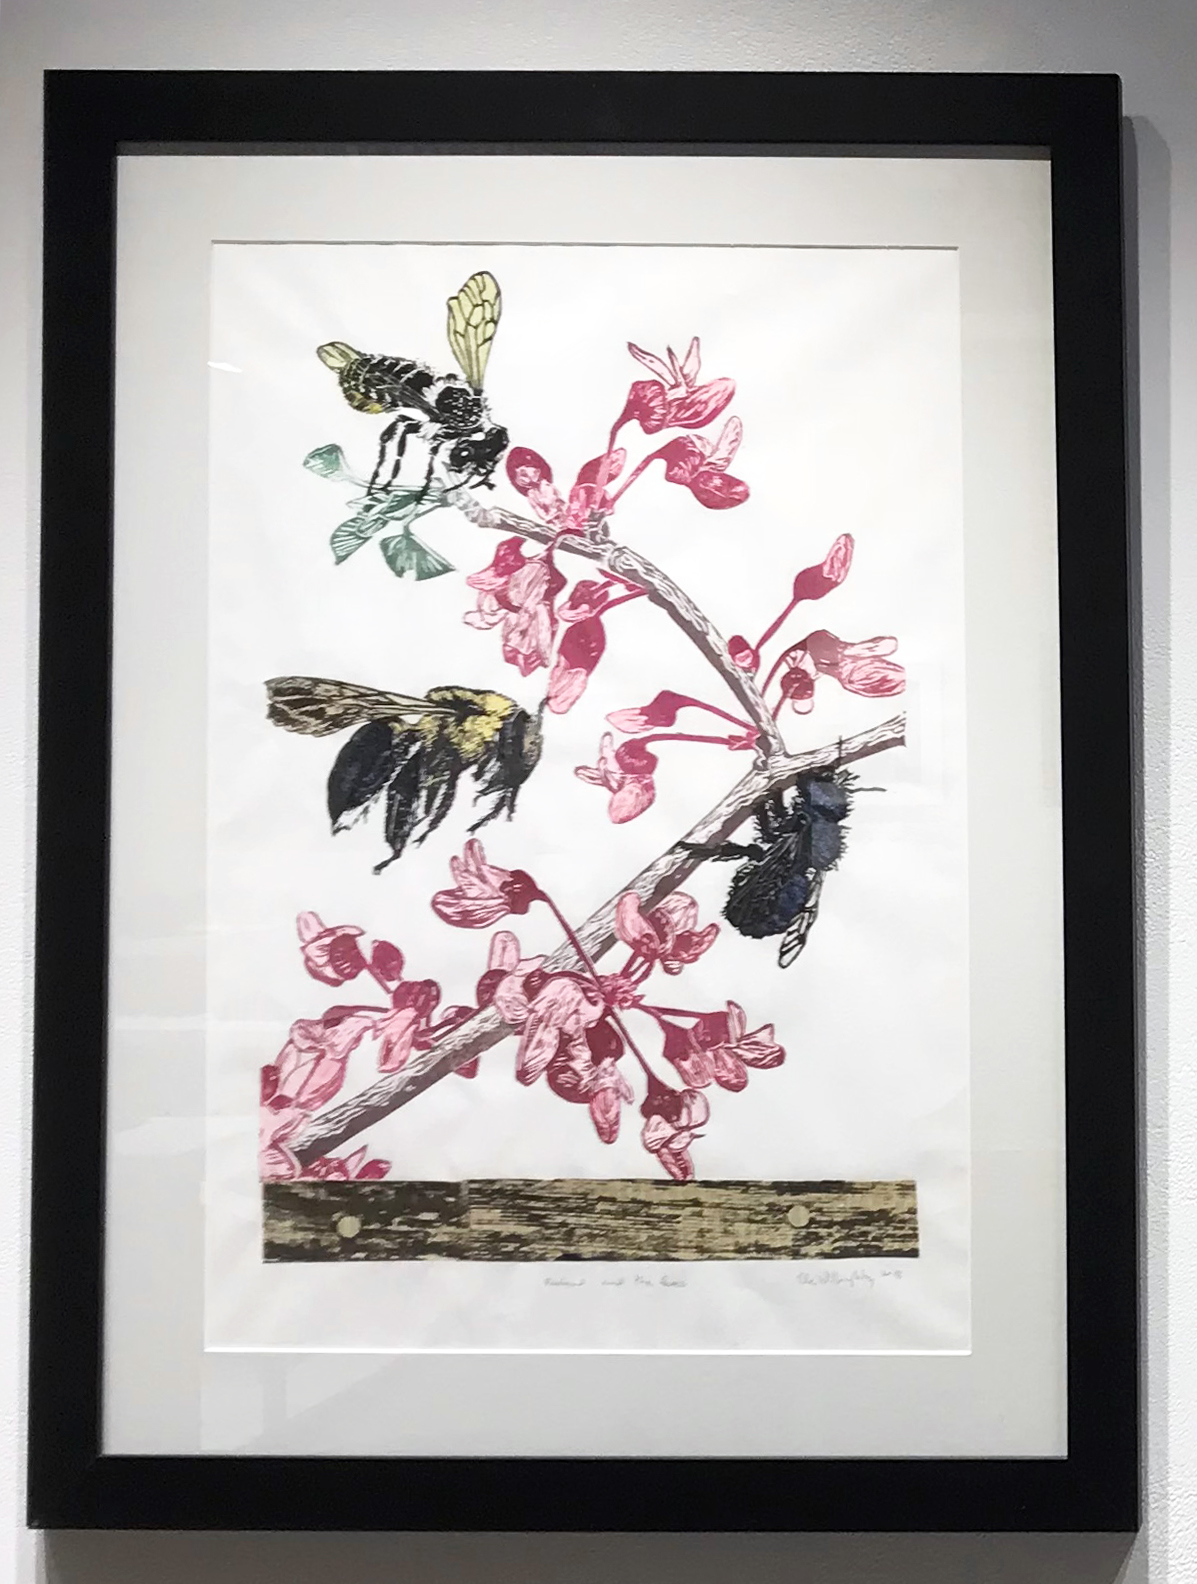 Redbud and the Bees by Ele Willoughby